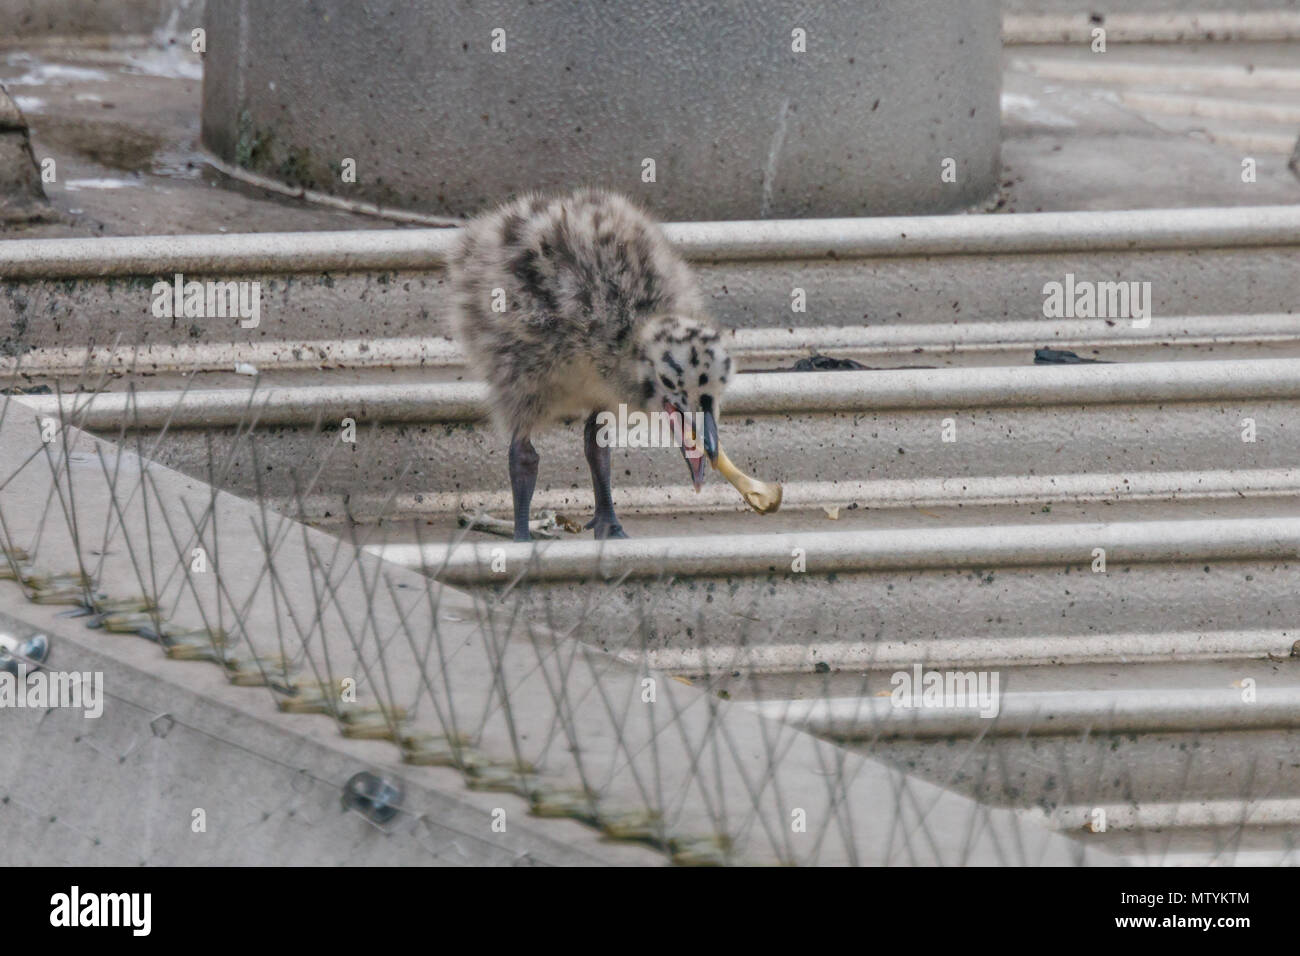 Forty Lane, Wembley Park, UK. 31st May 2018. Recently hatched Common Gull (Seagull) chick find a chicken bone for breakfast on urban supermarket roof.  1 of the 3 hungry Larus canus chicks heads out their nest in search of breakfast. Credit: amanda rose/Alamy Live News - Stock Image